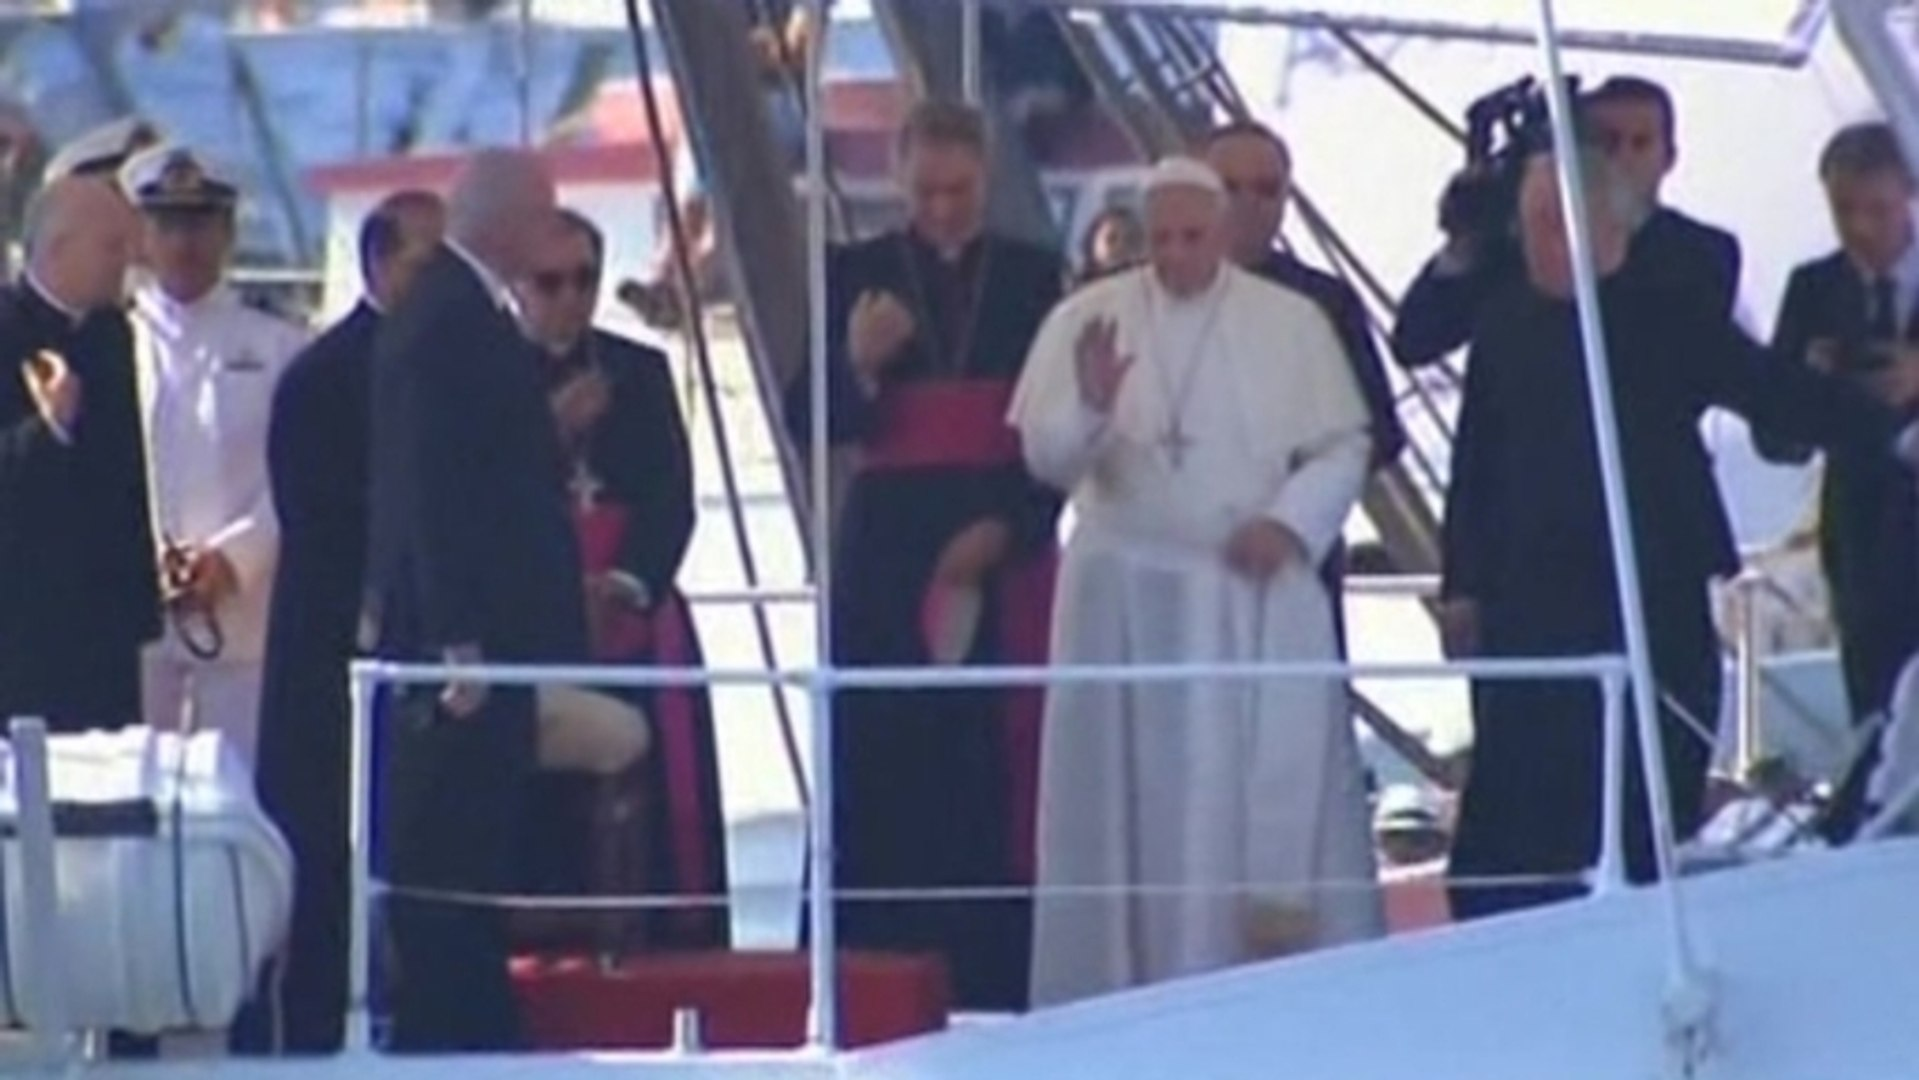 Pope Francis visits Lampedusa on his first official visit outside Rome